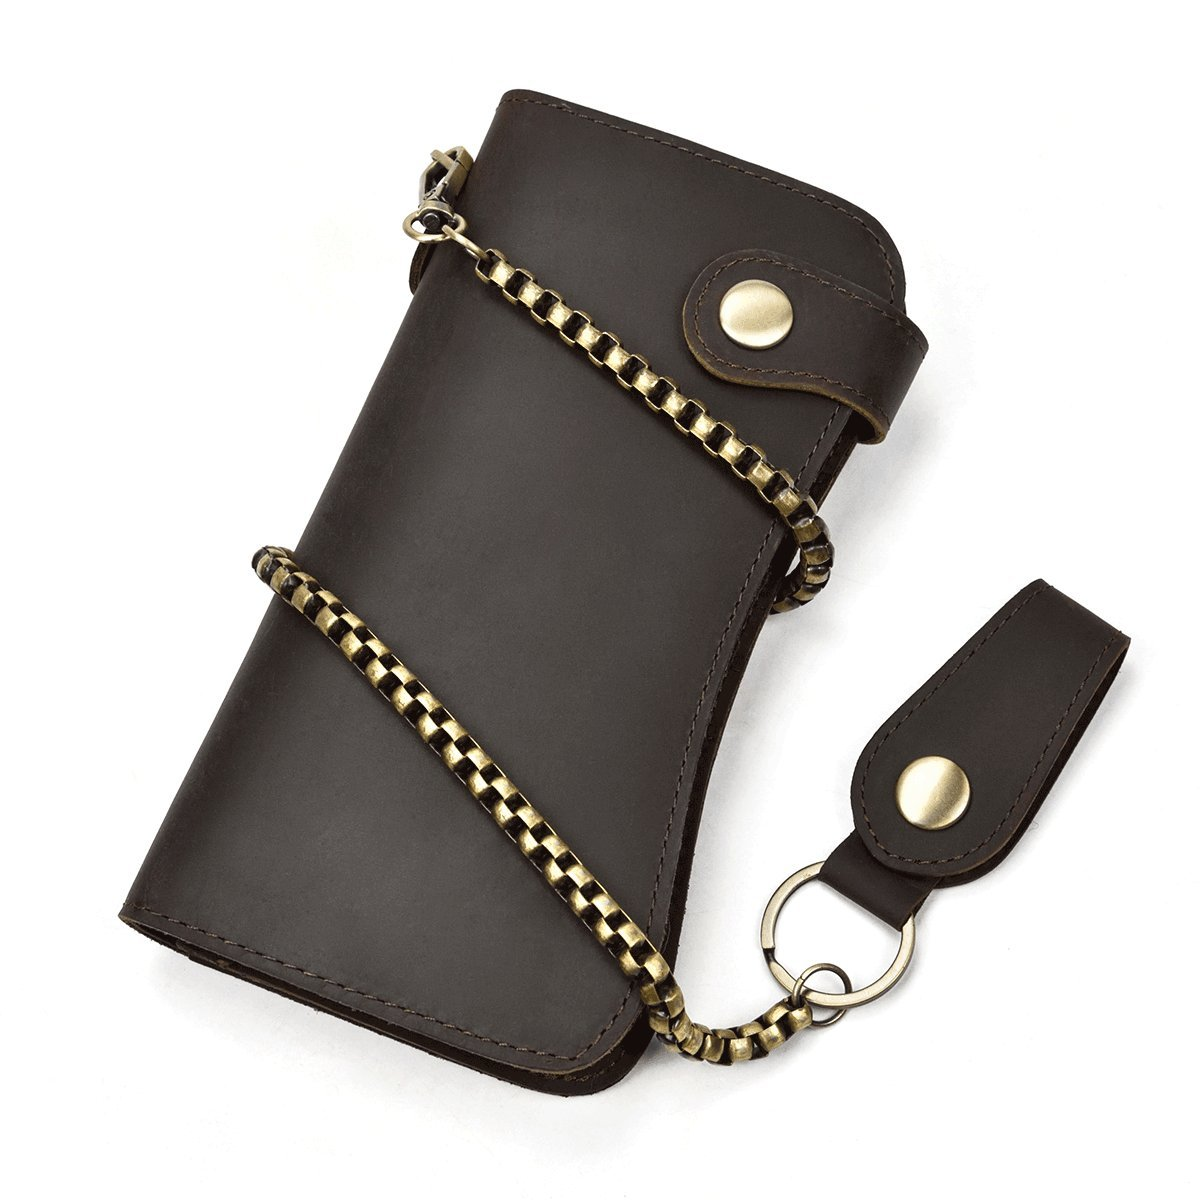 Men's Genuine Leather Long Wallet With Zipper Pocket Vintage Chain Checkbook Purse (Chain wallet)